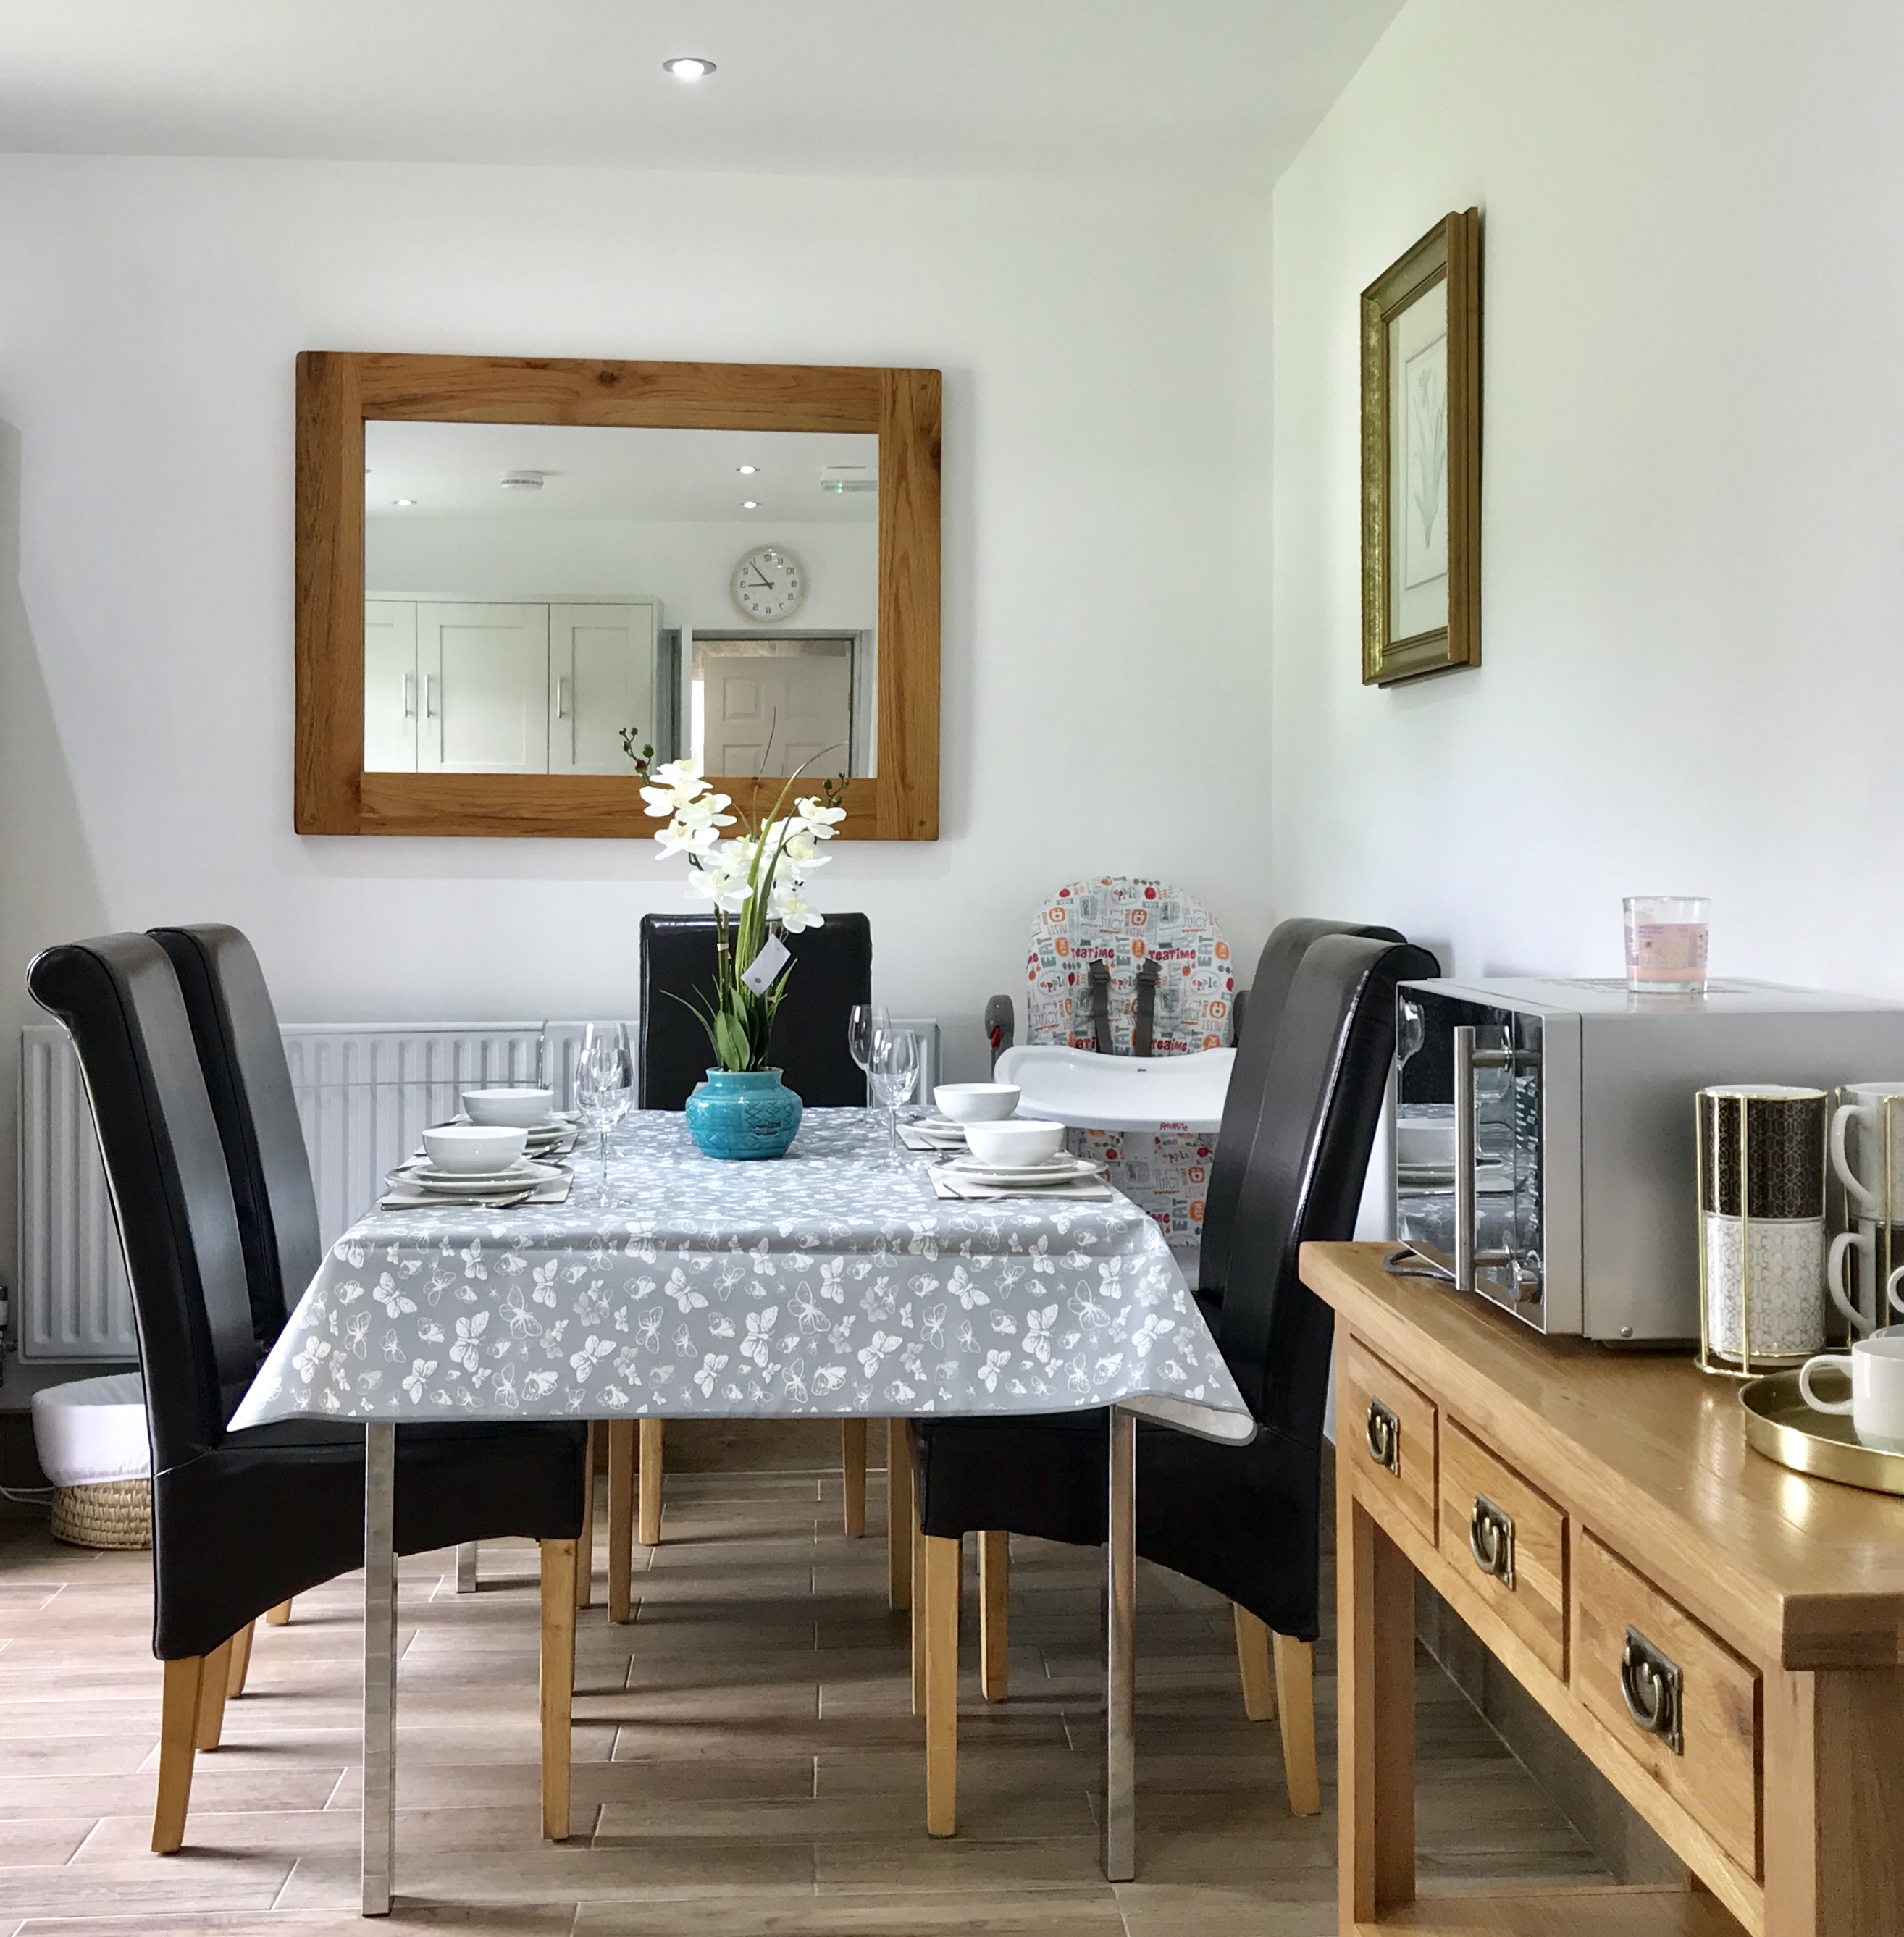 Apartment The Woodfarm Lodge - 3 Bedroom House with parking - Oxford photo 20472362